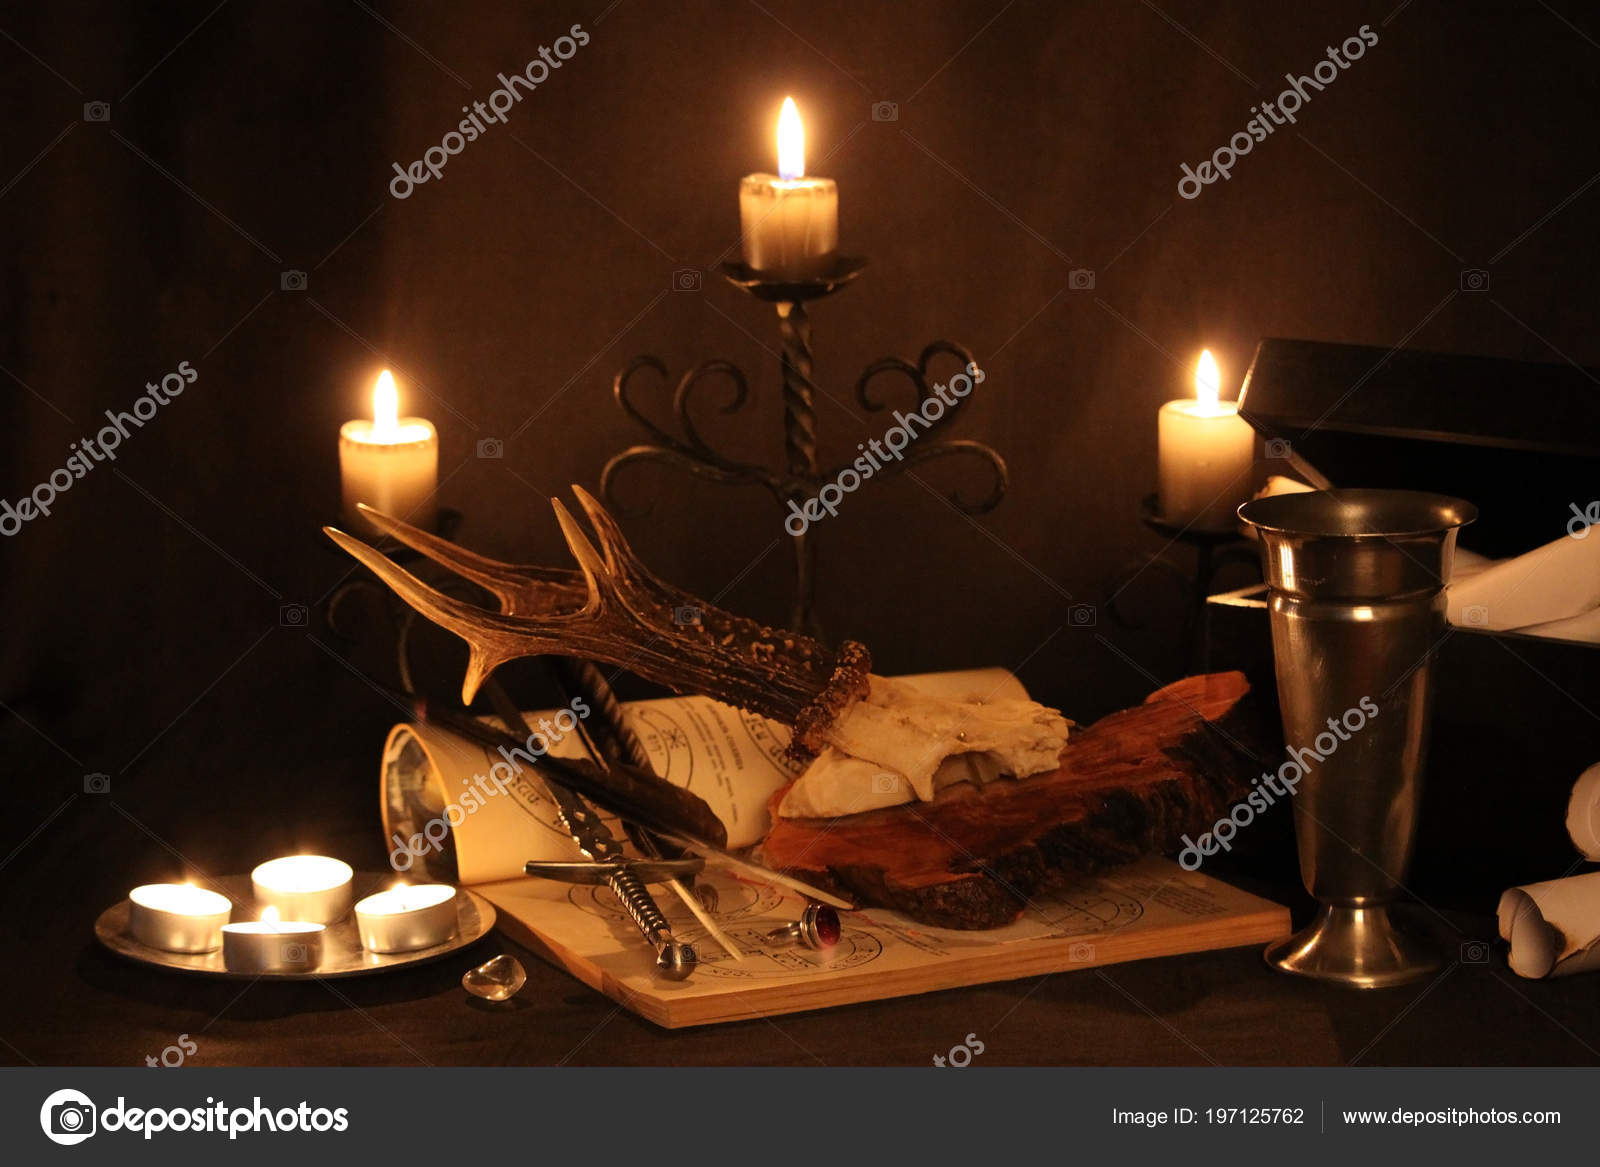 Black Magic Spells Wiccan Spells Herbs Still Live Old Oil     Stock     Black Magic Spells  Wiccan spells and herbs  Still Live  Old oil lamps   antique books  dried rose buds  a burning candle in a copper bowl  medicine  bottles